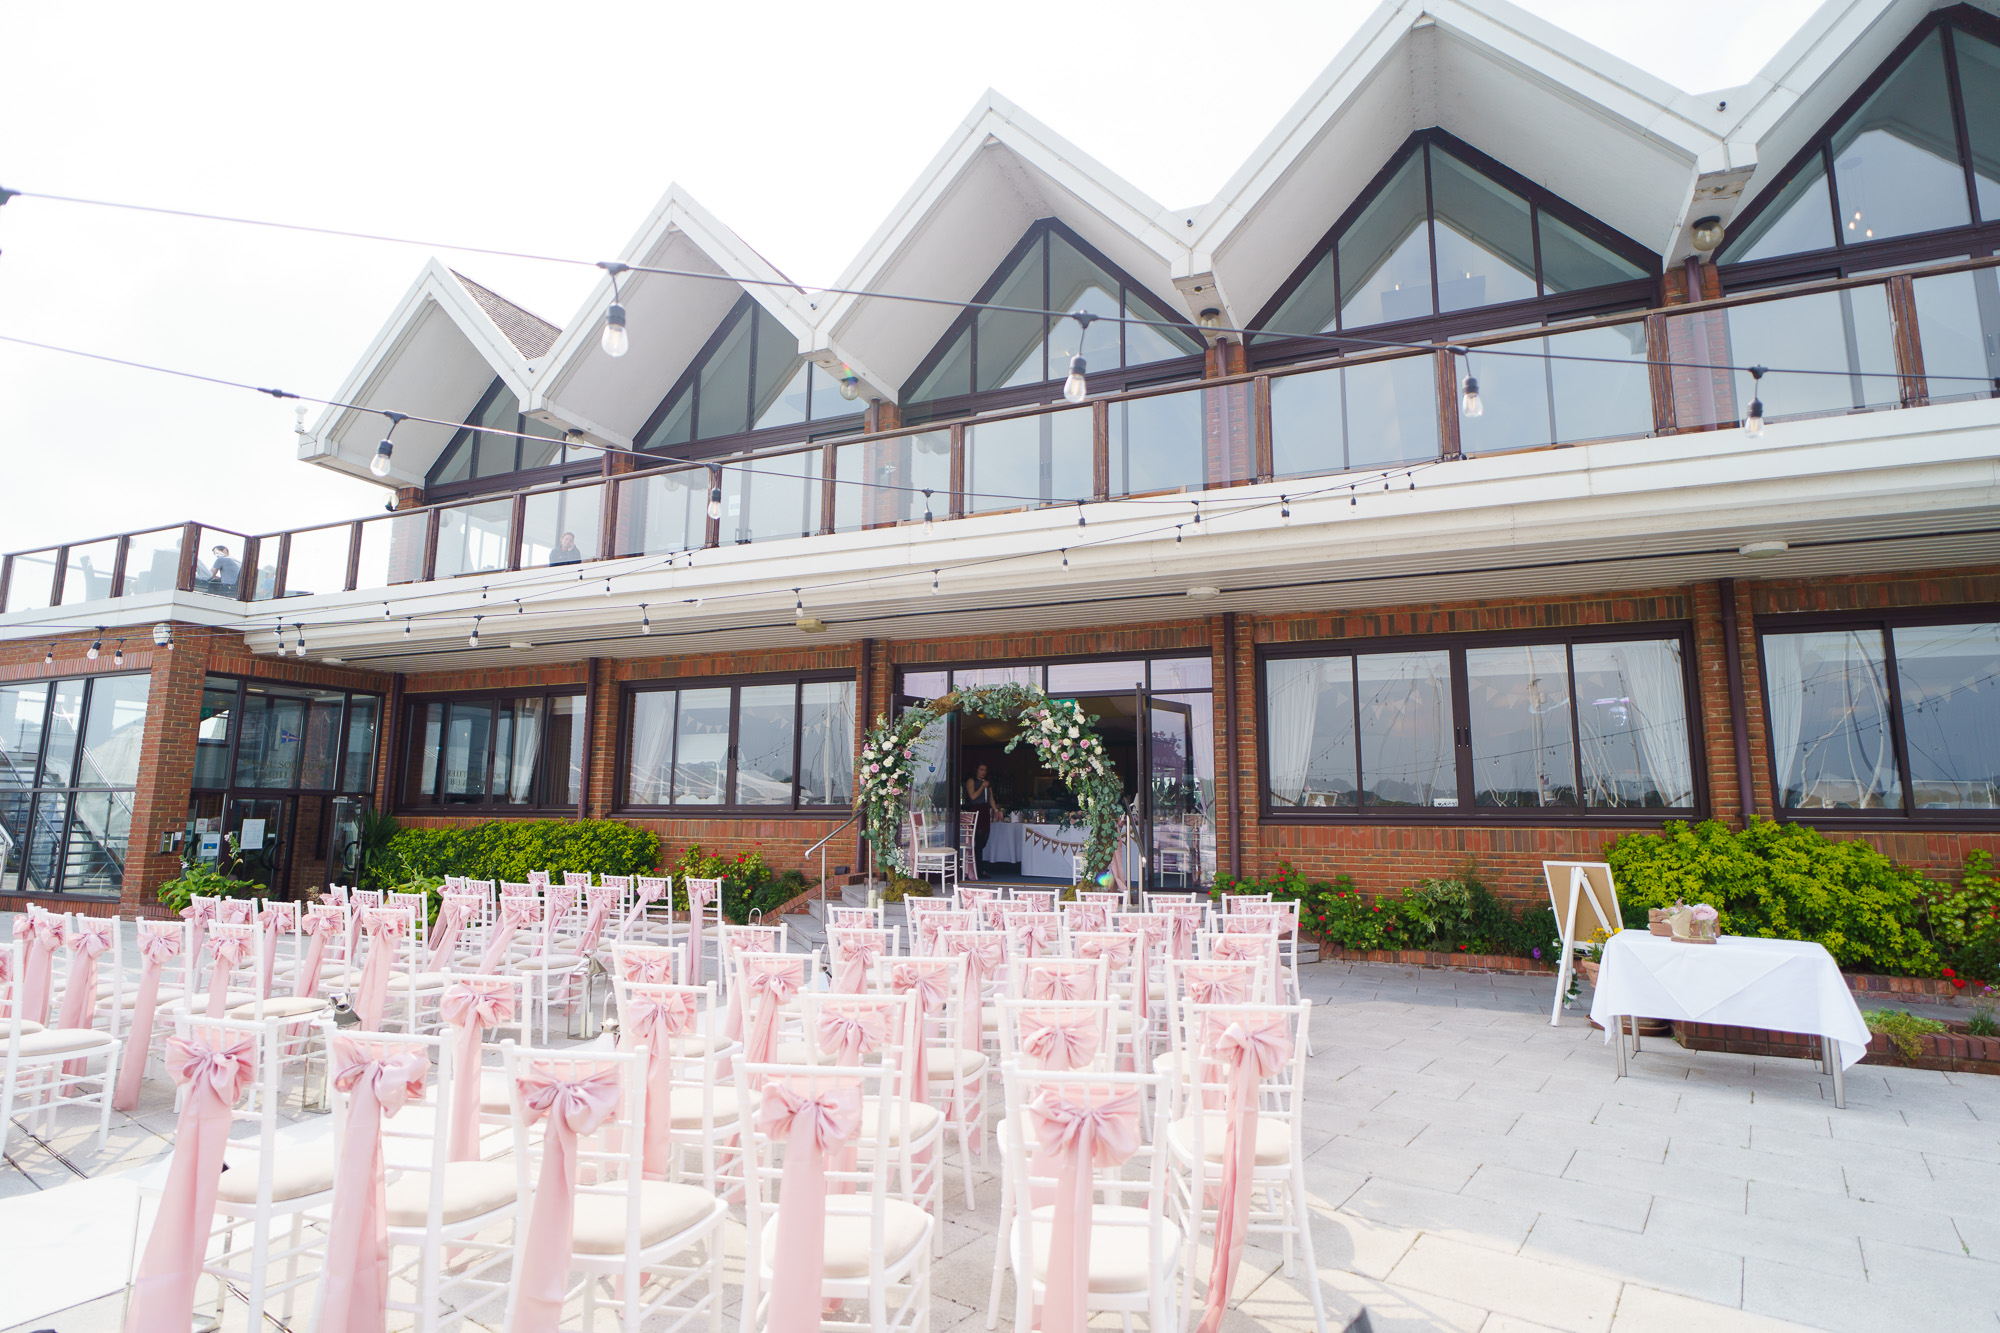 outdoor shot of royal southern yacht club hamble le rice wet up as wedding ceremony